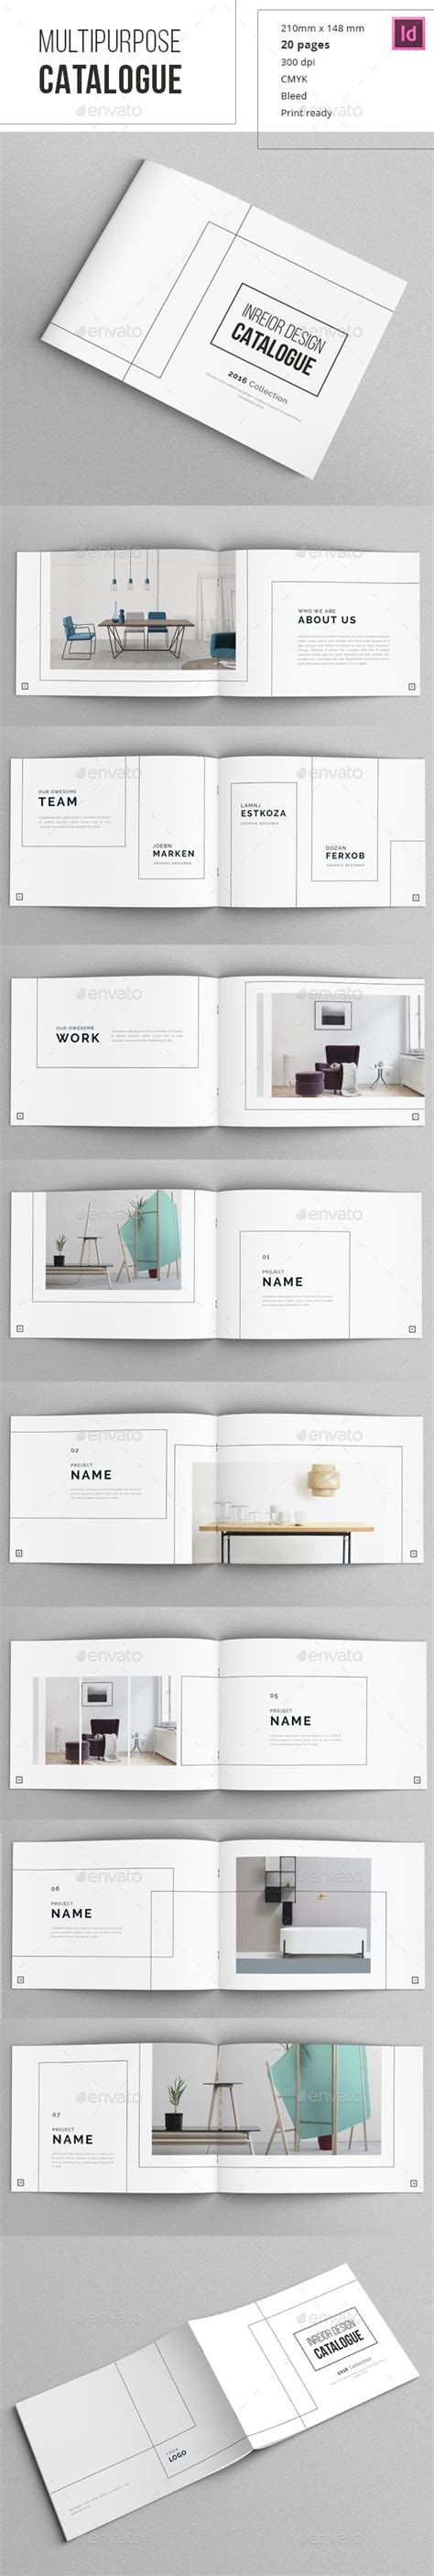 indesign booklet template minimal indesign catalogue the shape typography and